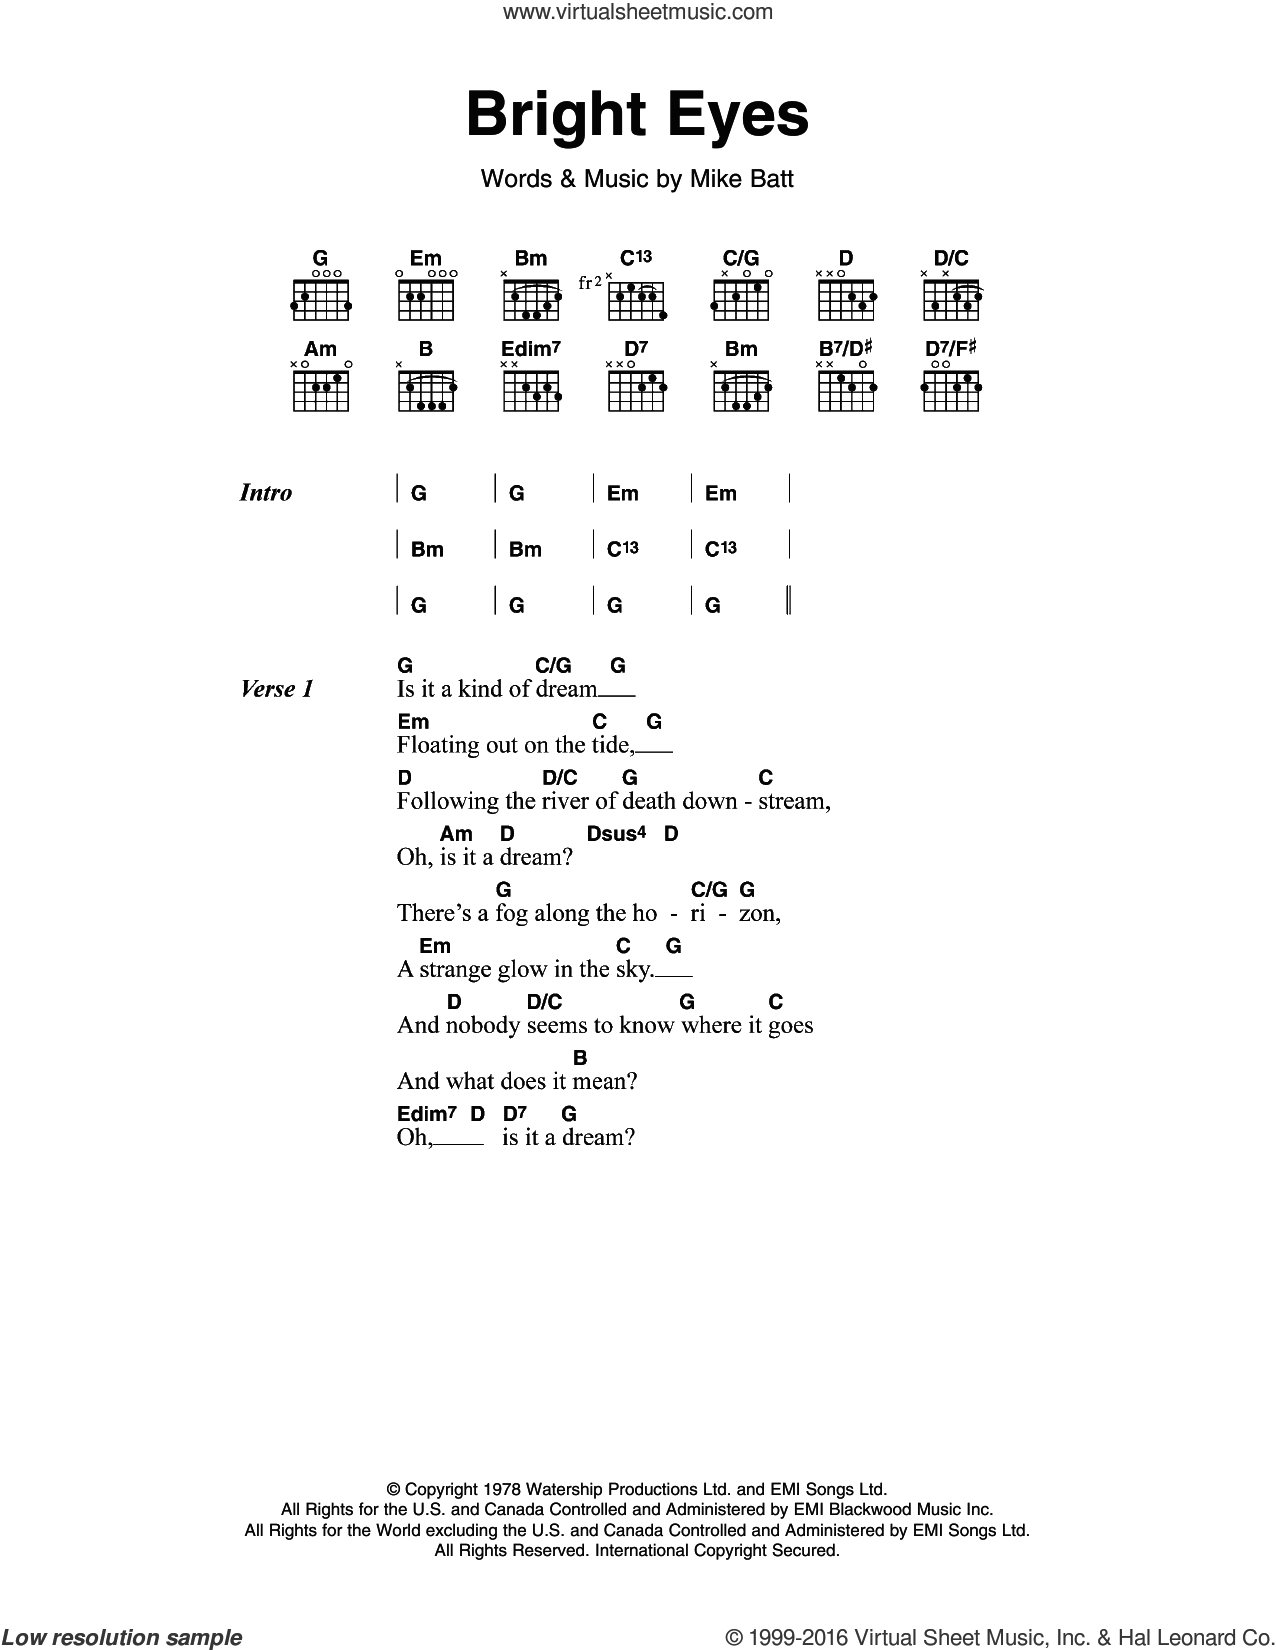 Bright Eyes sheet music for guitar (chords) by Art Garfunkel and Mike Batt, intermediate skill level